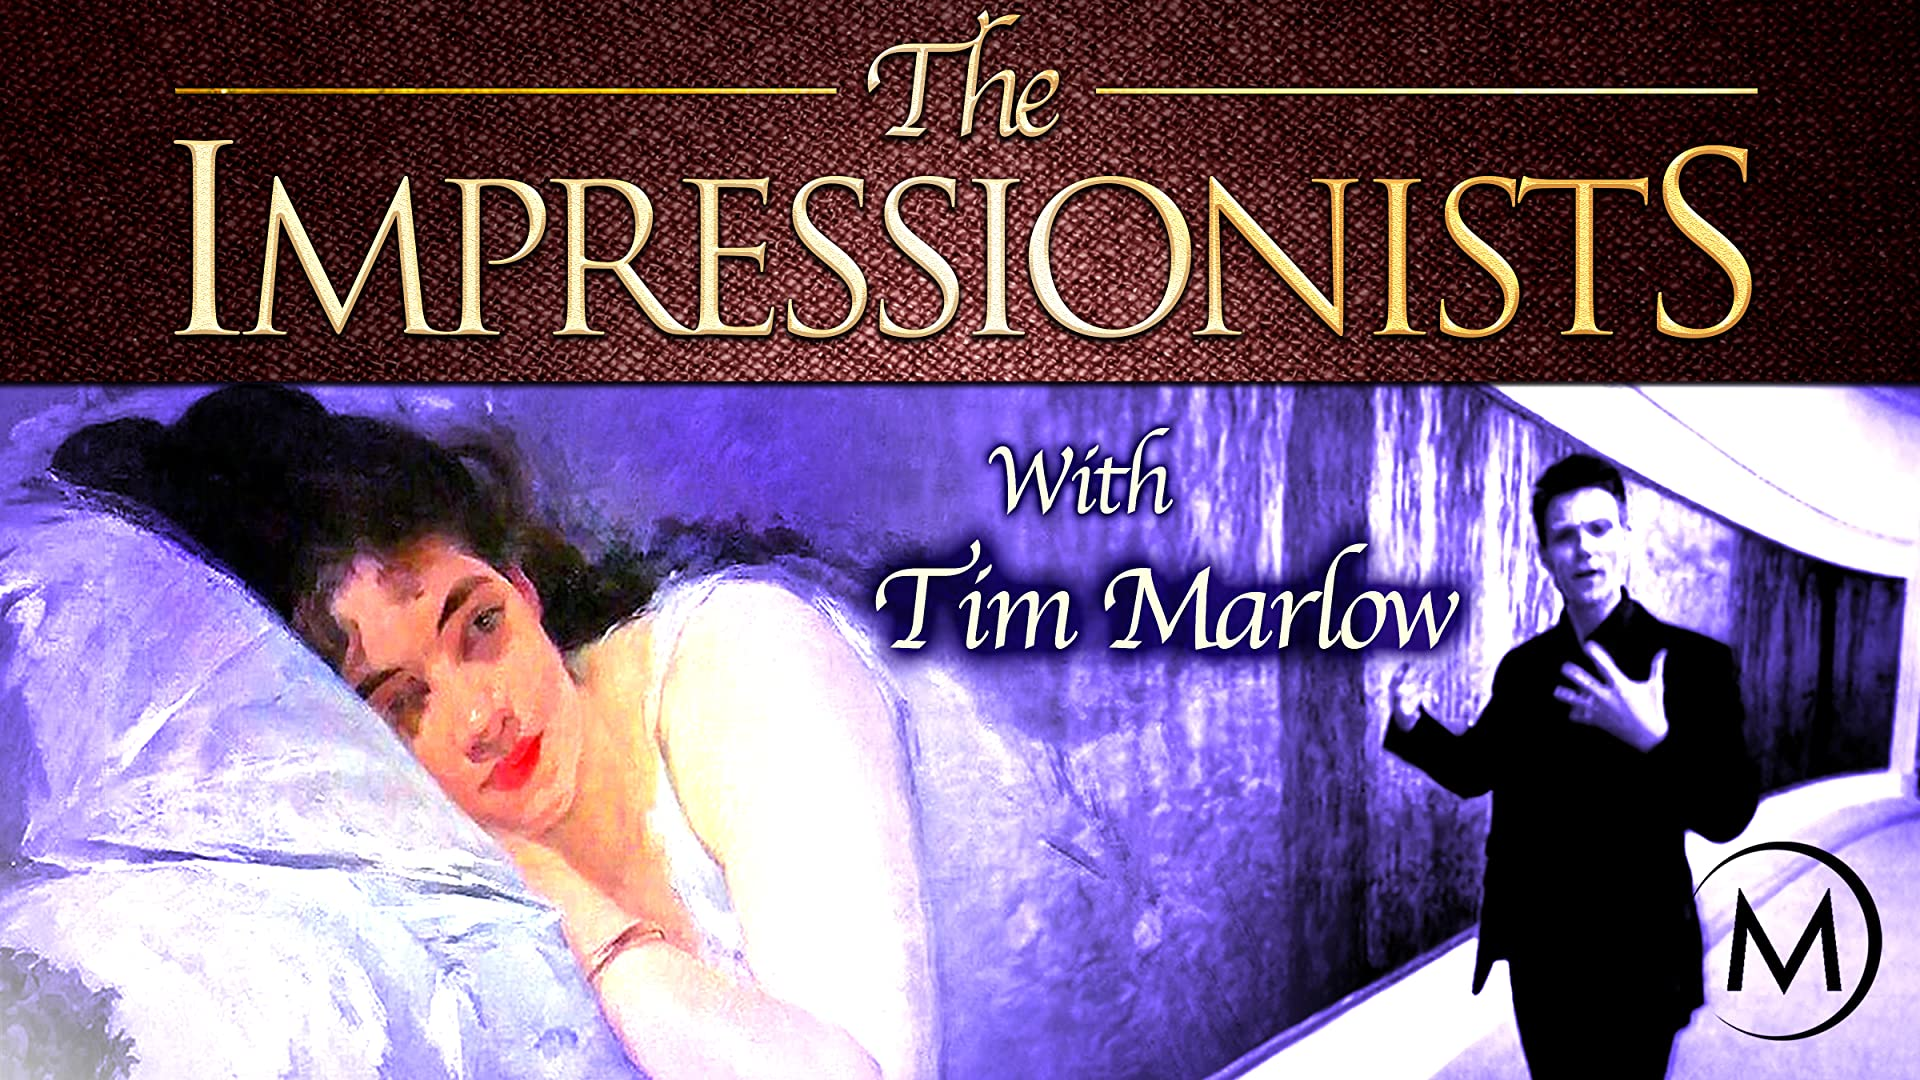 The Impressionists with Tim Marlow Season 1